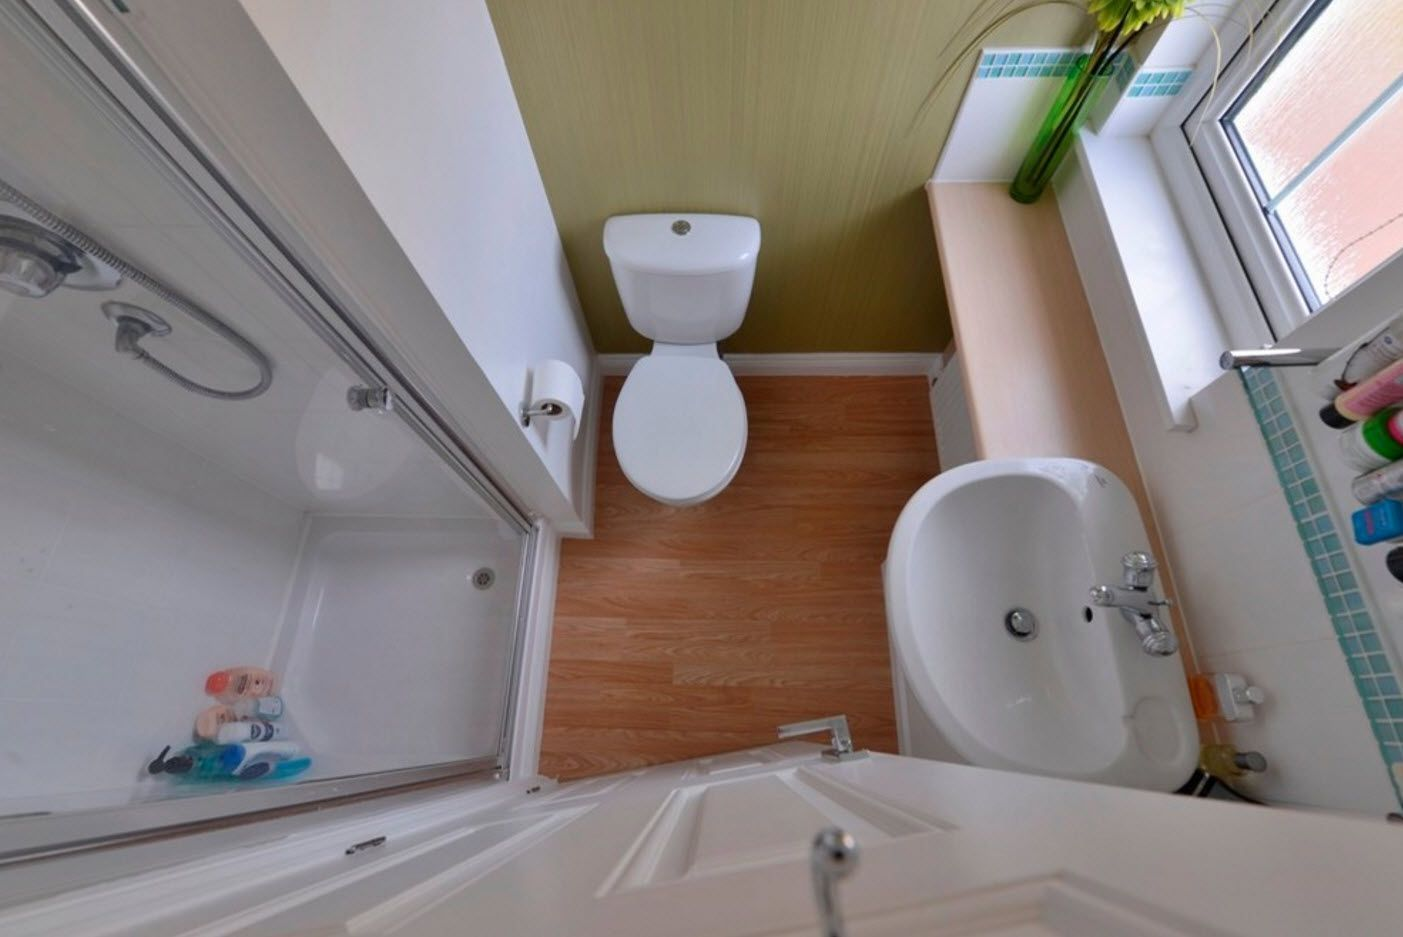 Top close-up view at the combined bathroom and toilet